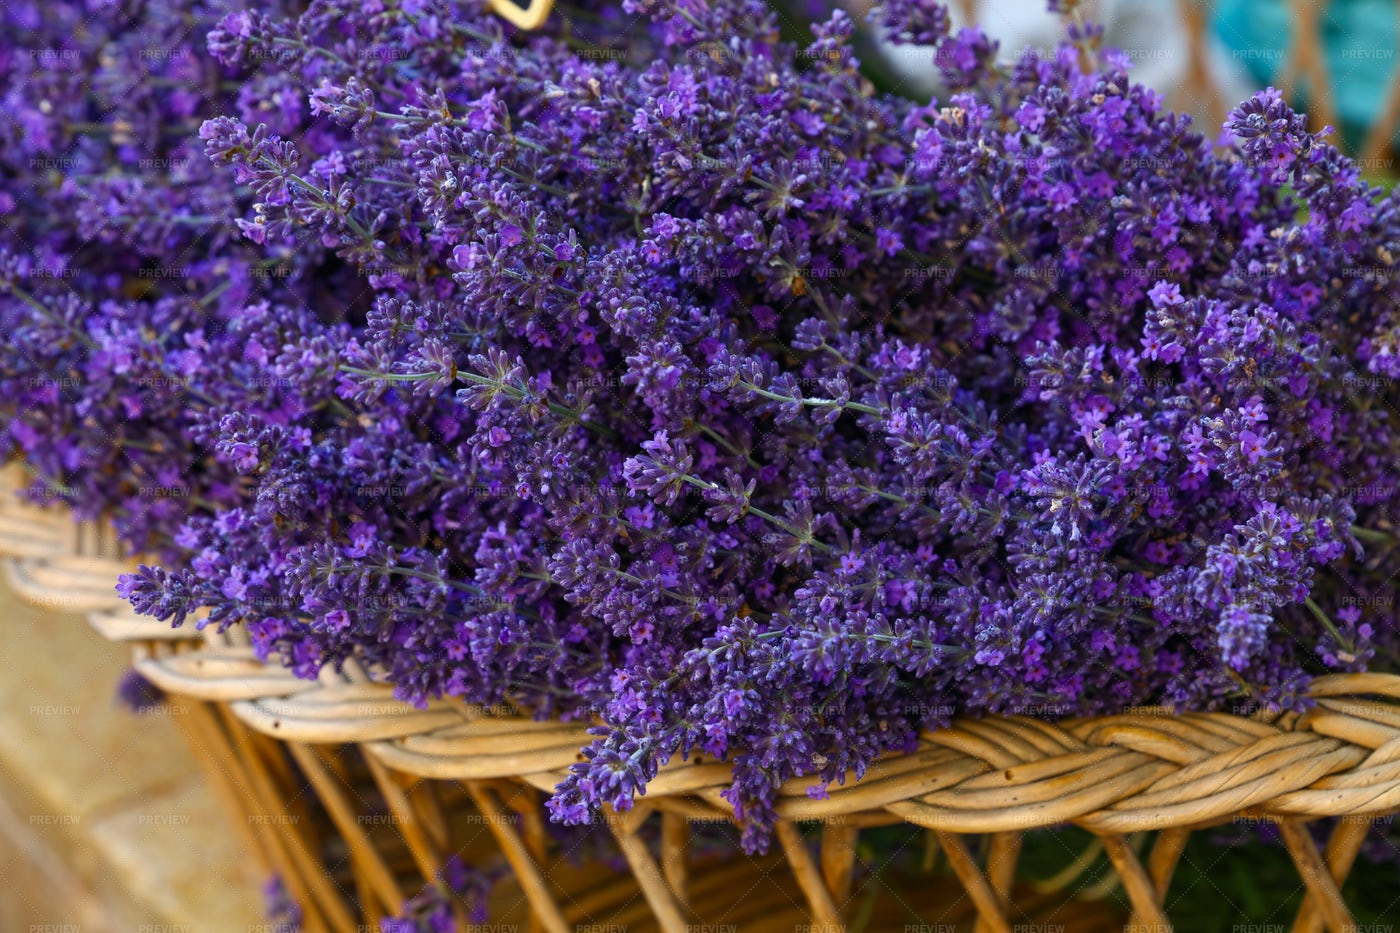 Lavenders In Wooden Basket: Stock Photos